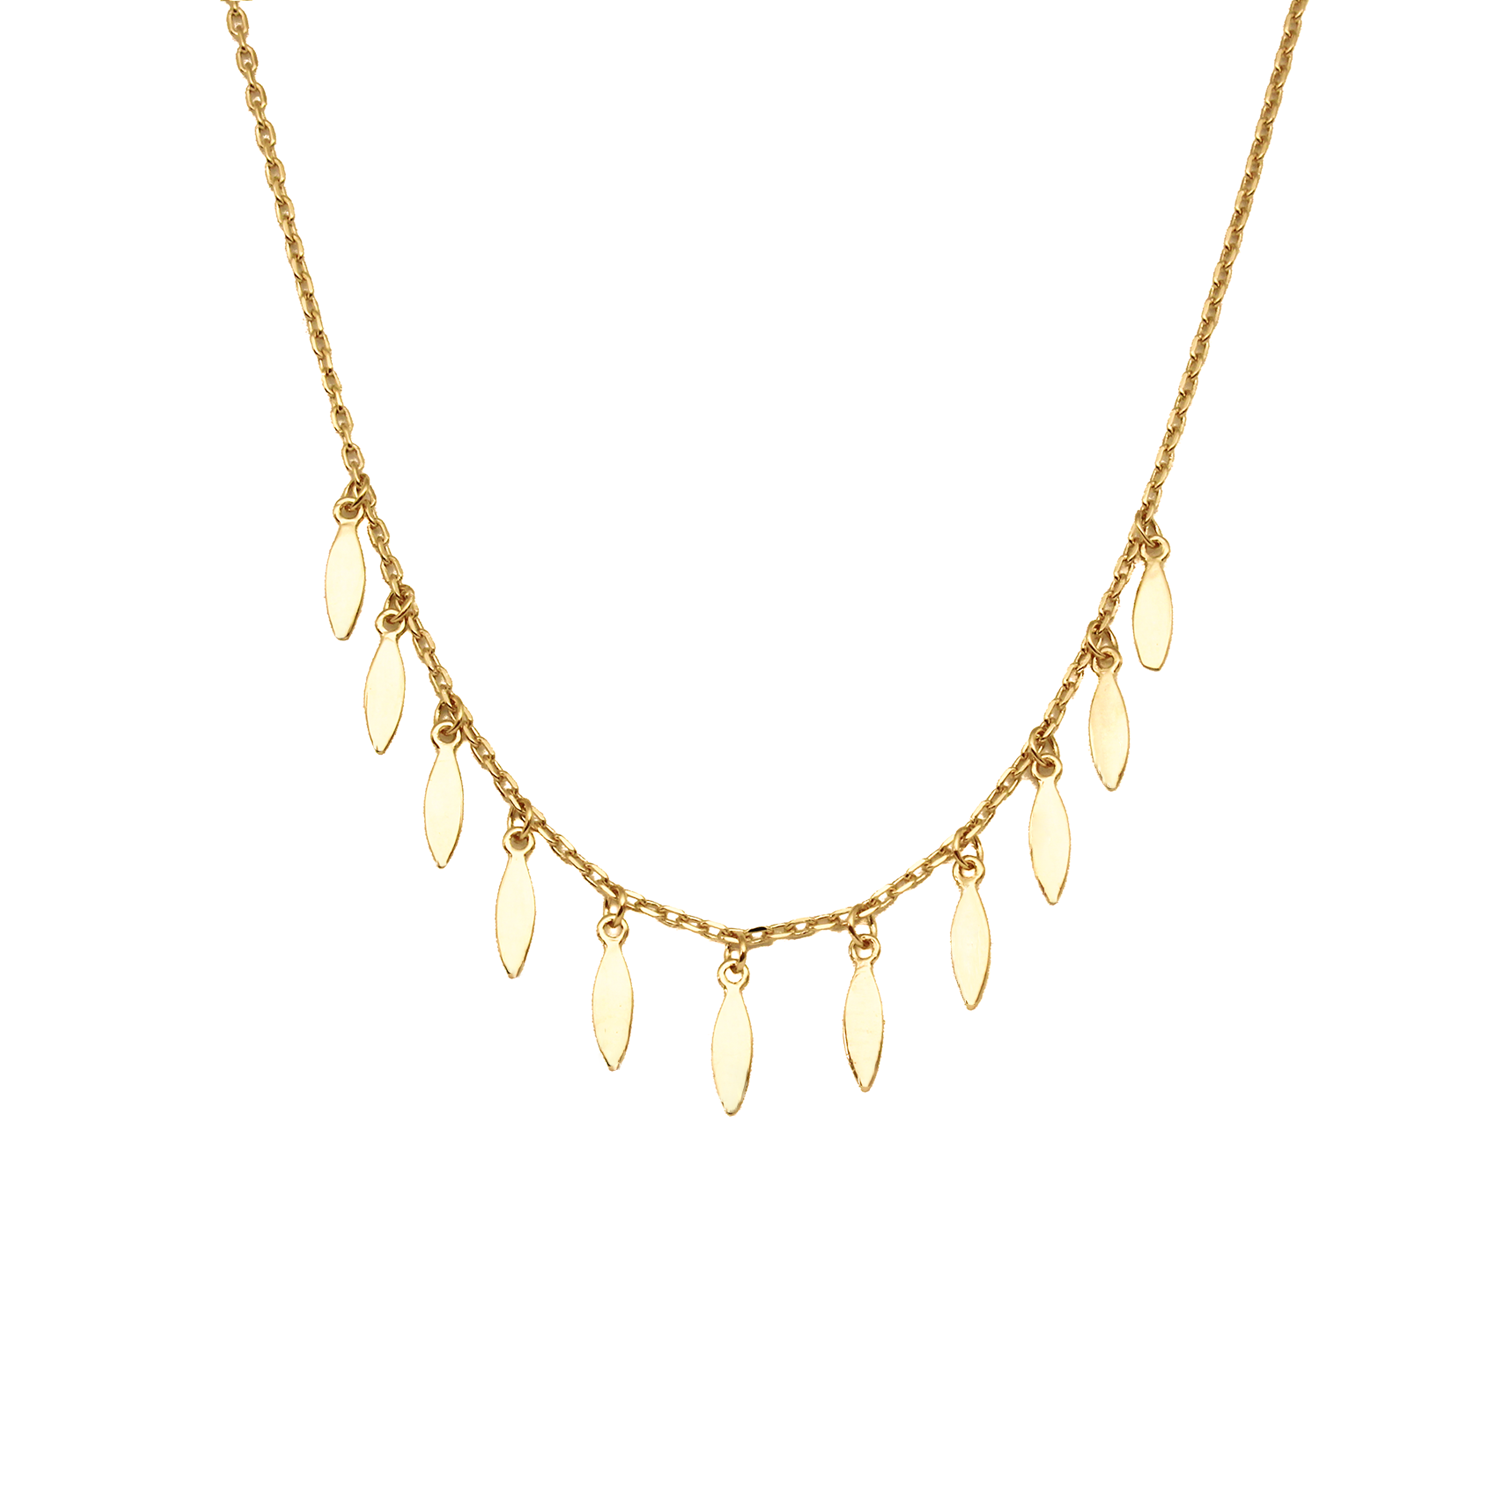 Revi Studios - 18K gold-plated Jewelry. Necklace bohemian style.